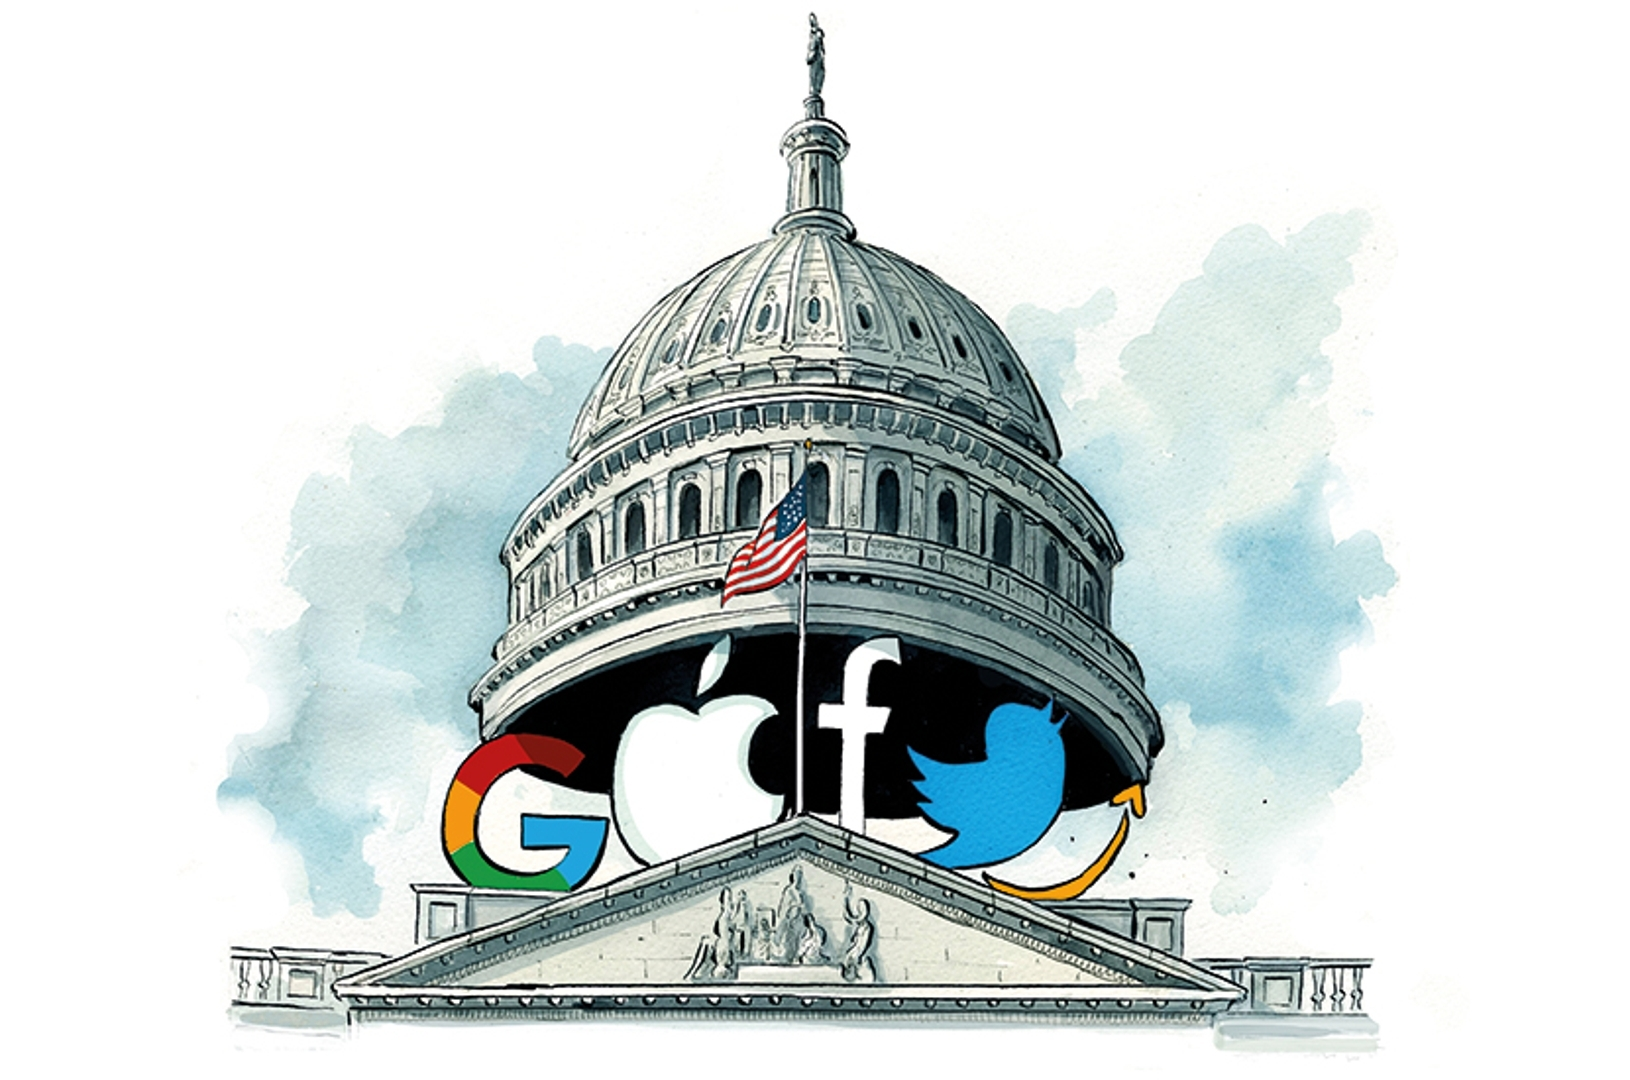 The tech supremacy: Silicon Valley can no longer conceal its power